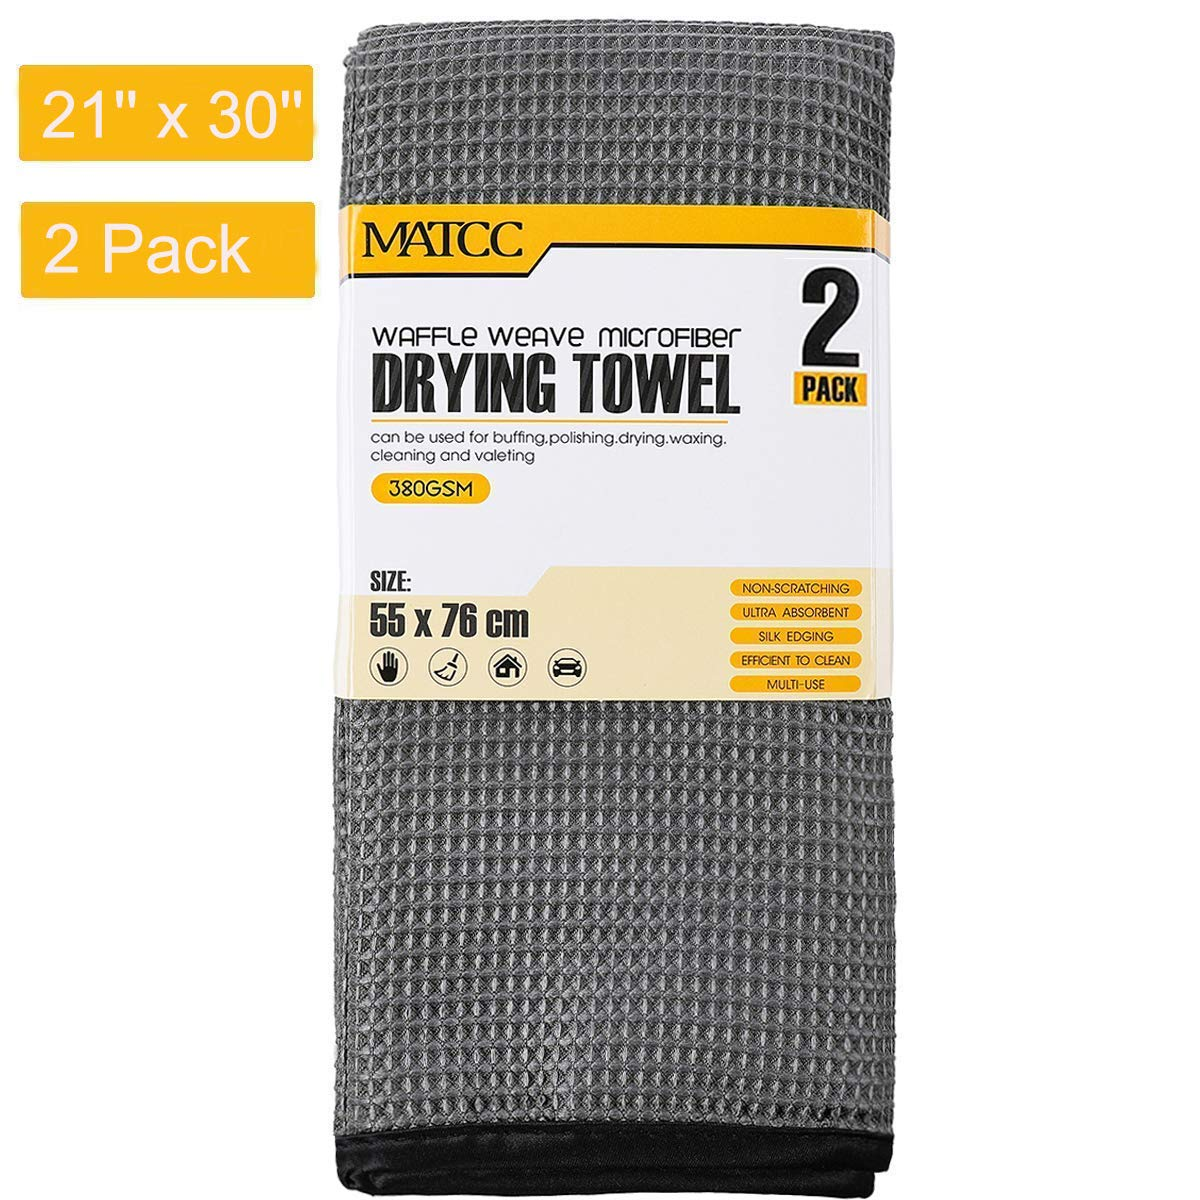 MATCC Microfiber Drying Towel Waffle Weave Large Microfiber Cleaning Cloths 2 Pack (21'' x 30'') Silk Edging Car Wash Detailing Towel for Washing Waxing Dusting Polishing and Drying Yomoid Co. Ltd